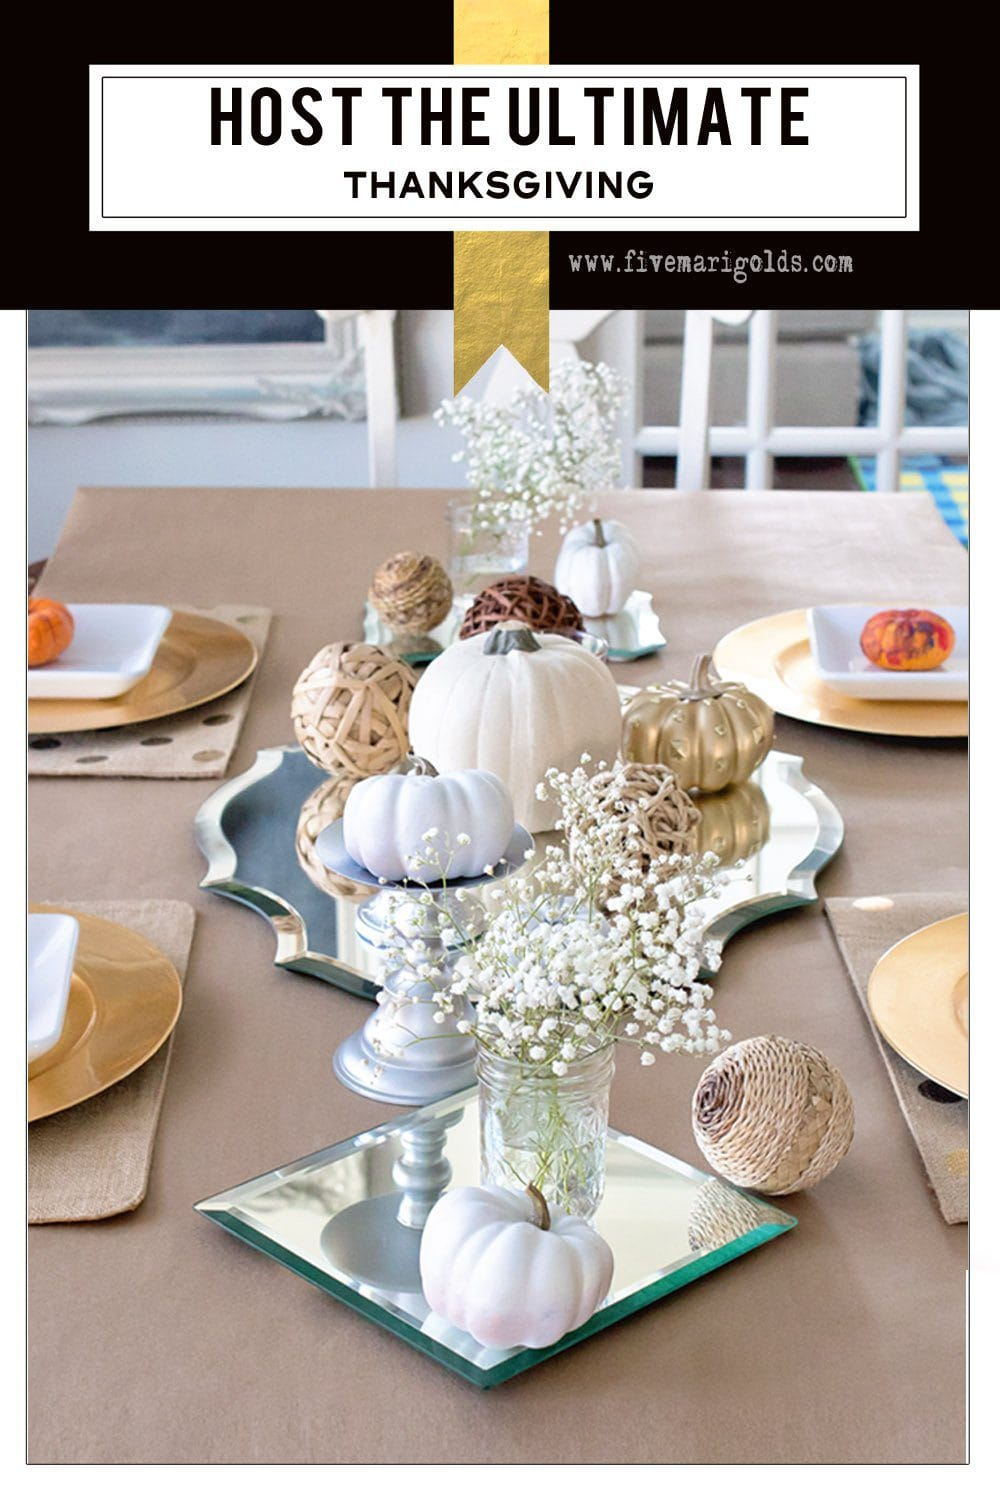 How to host the ultimate Thanksgiving with free printable favor tags | Five Marigolds